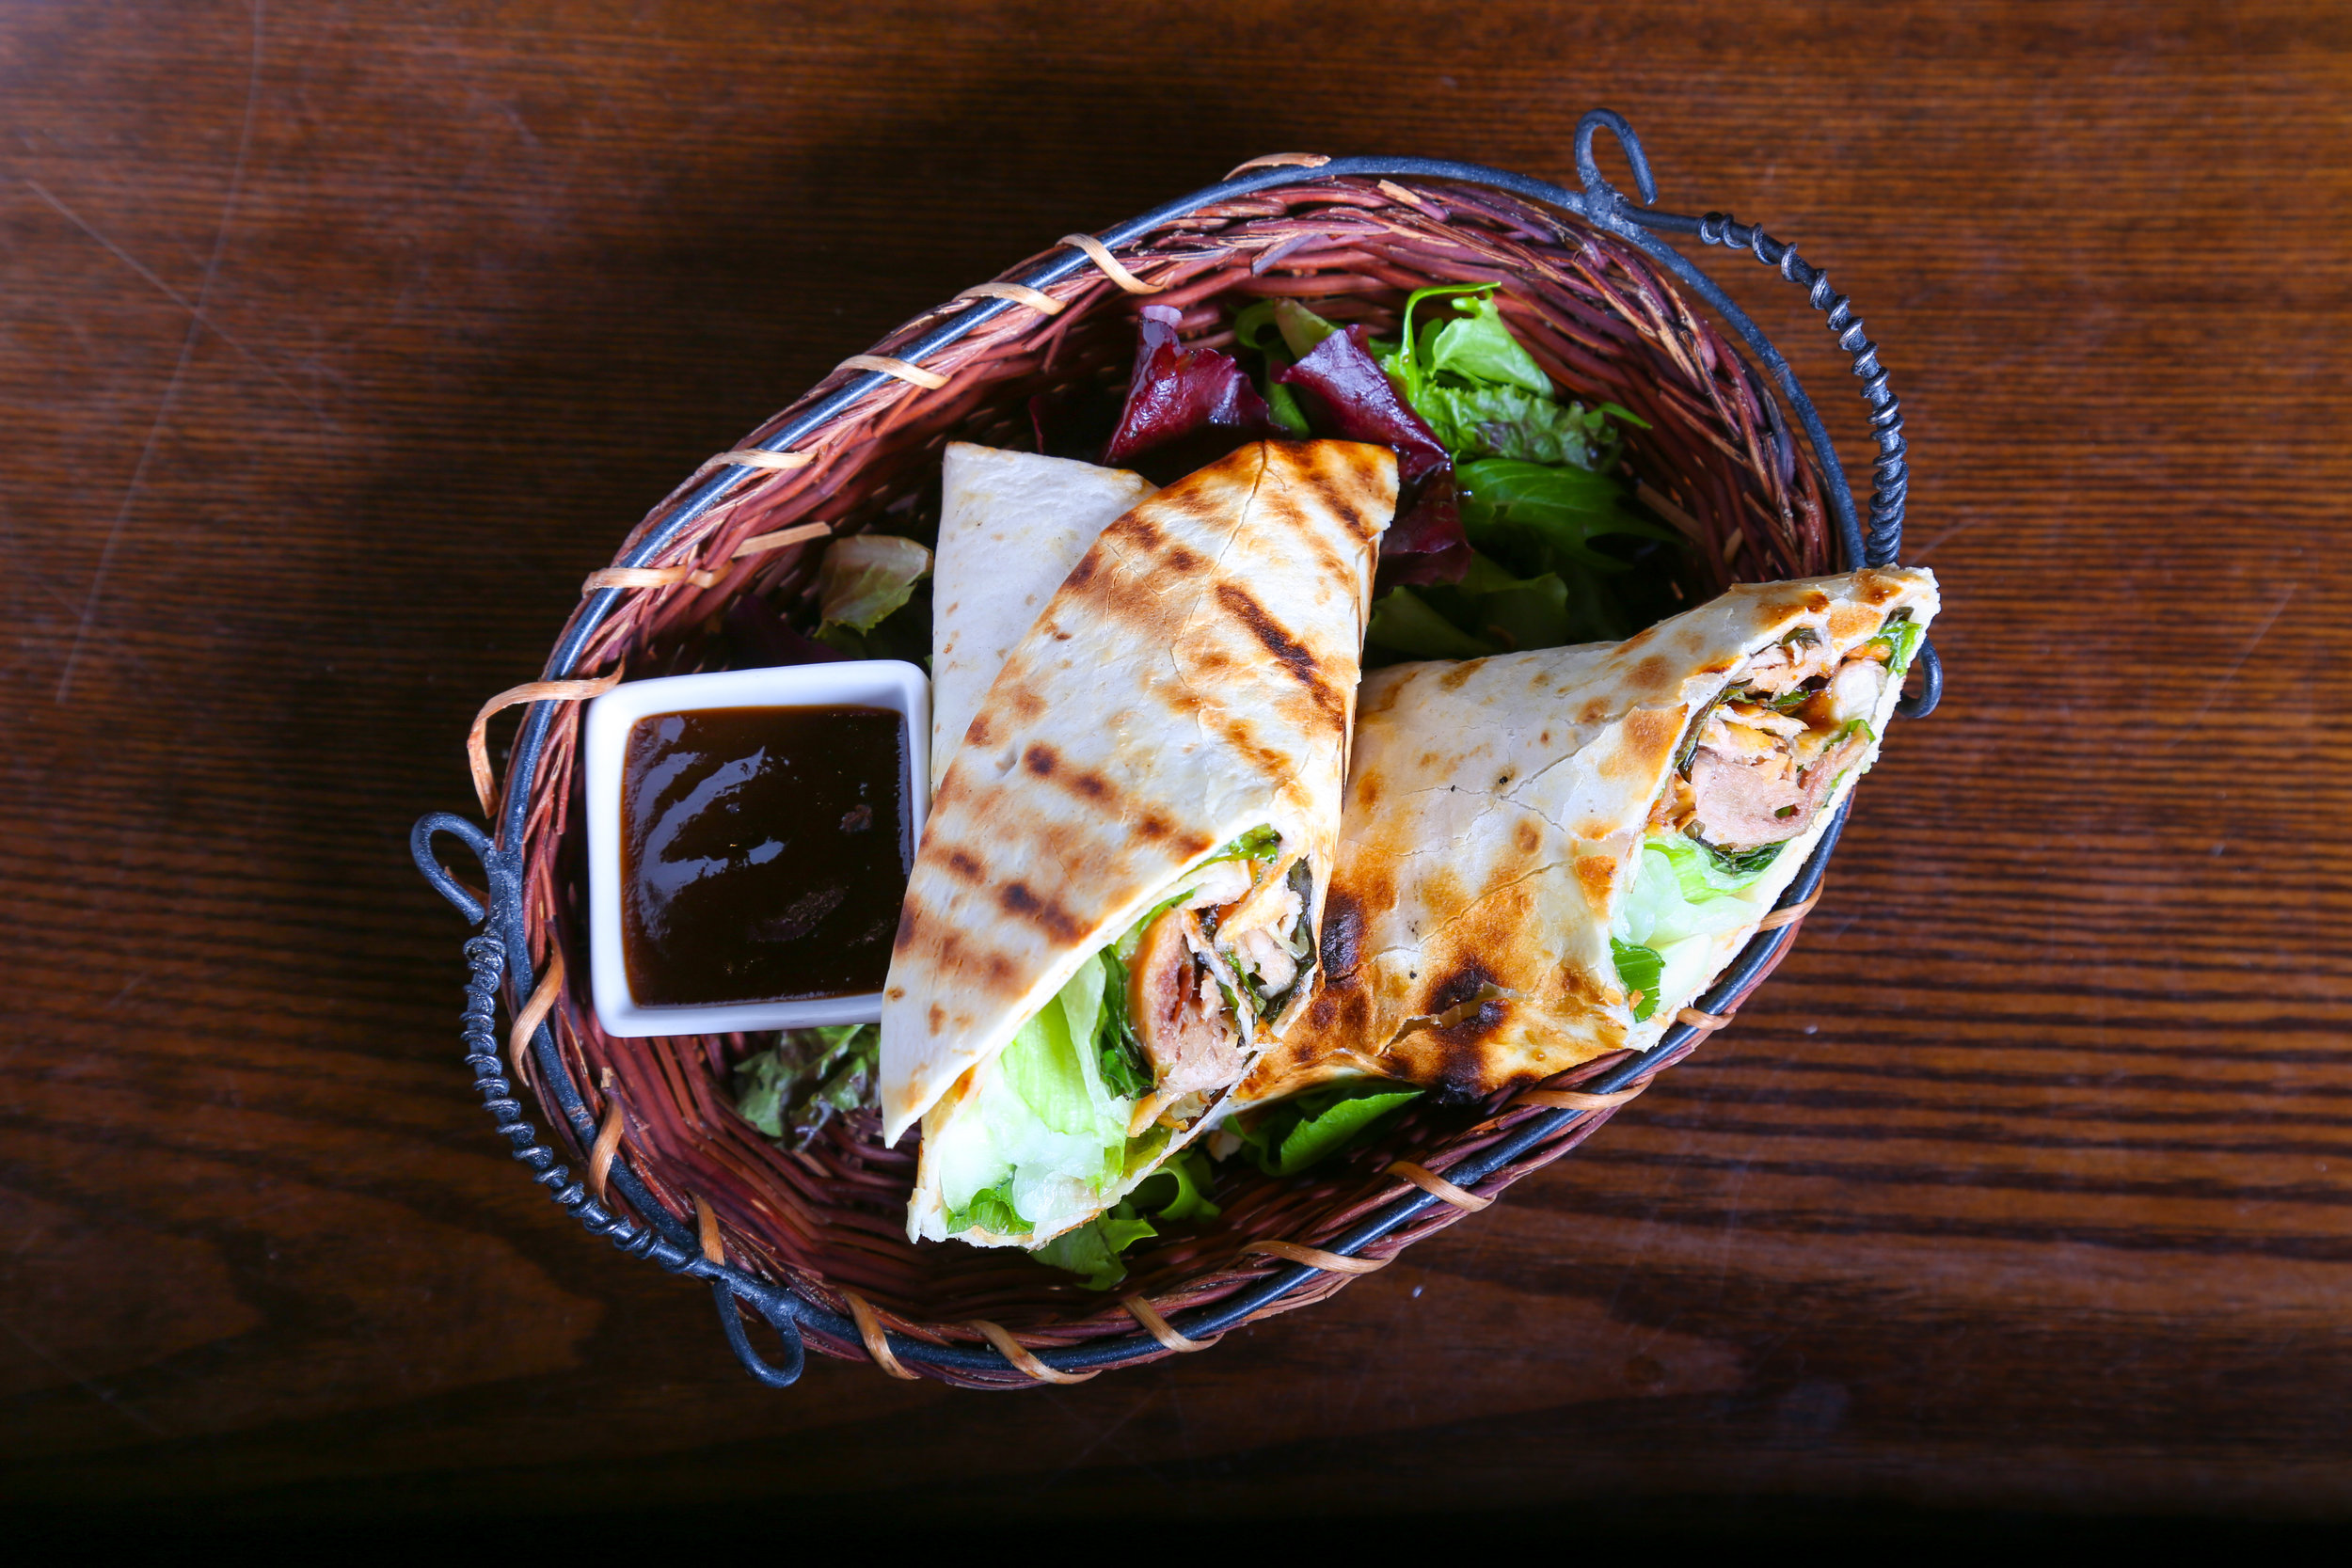 Duck Wrap     - Roasted duck, carrot, cucumber, and scallion wrapped in tortilla skin with Peking sauce.